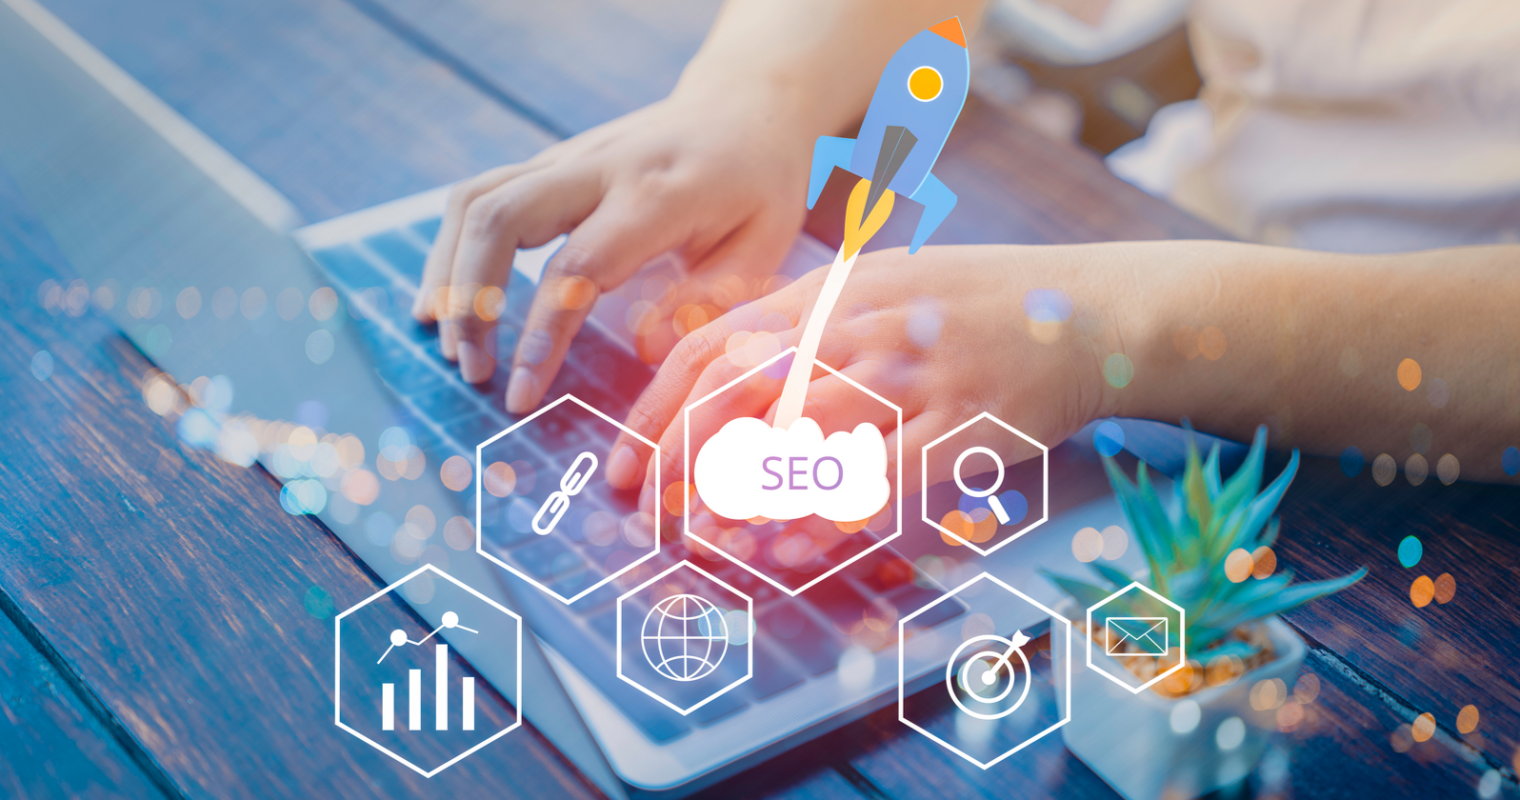 how to prioritize in seo for the greatest business impact 607d2f547f65c 1520x800 - Why Should You Invest in SEO for Your Company?